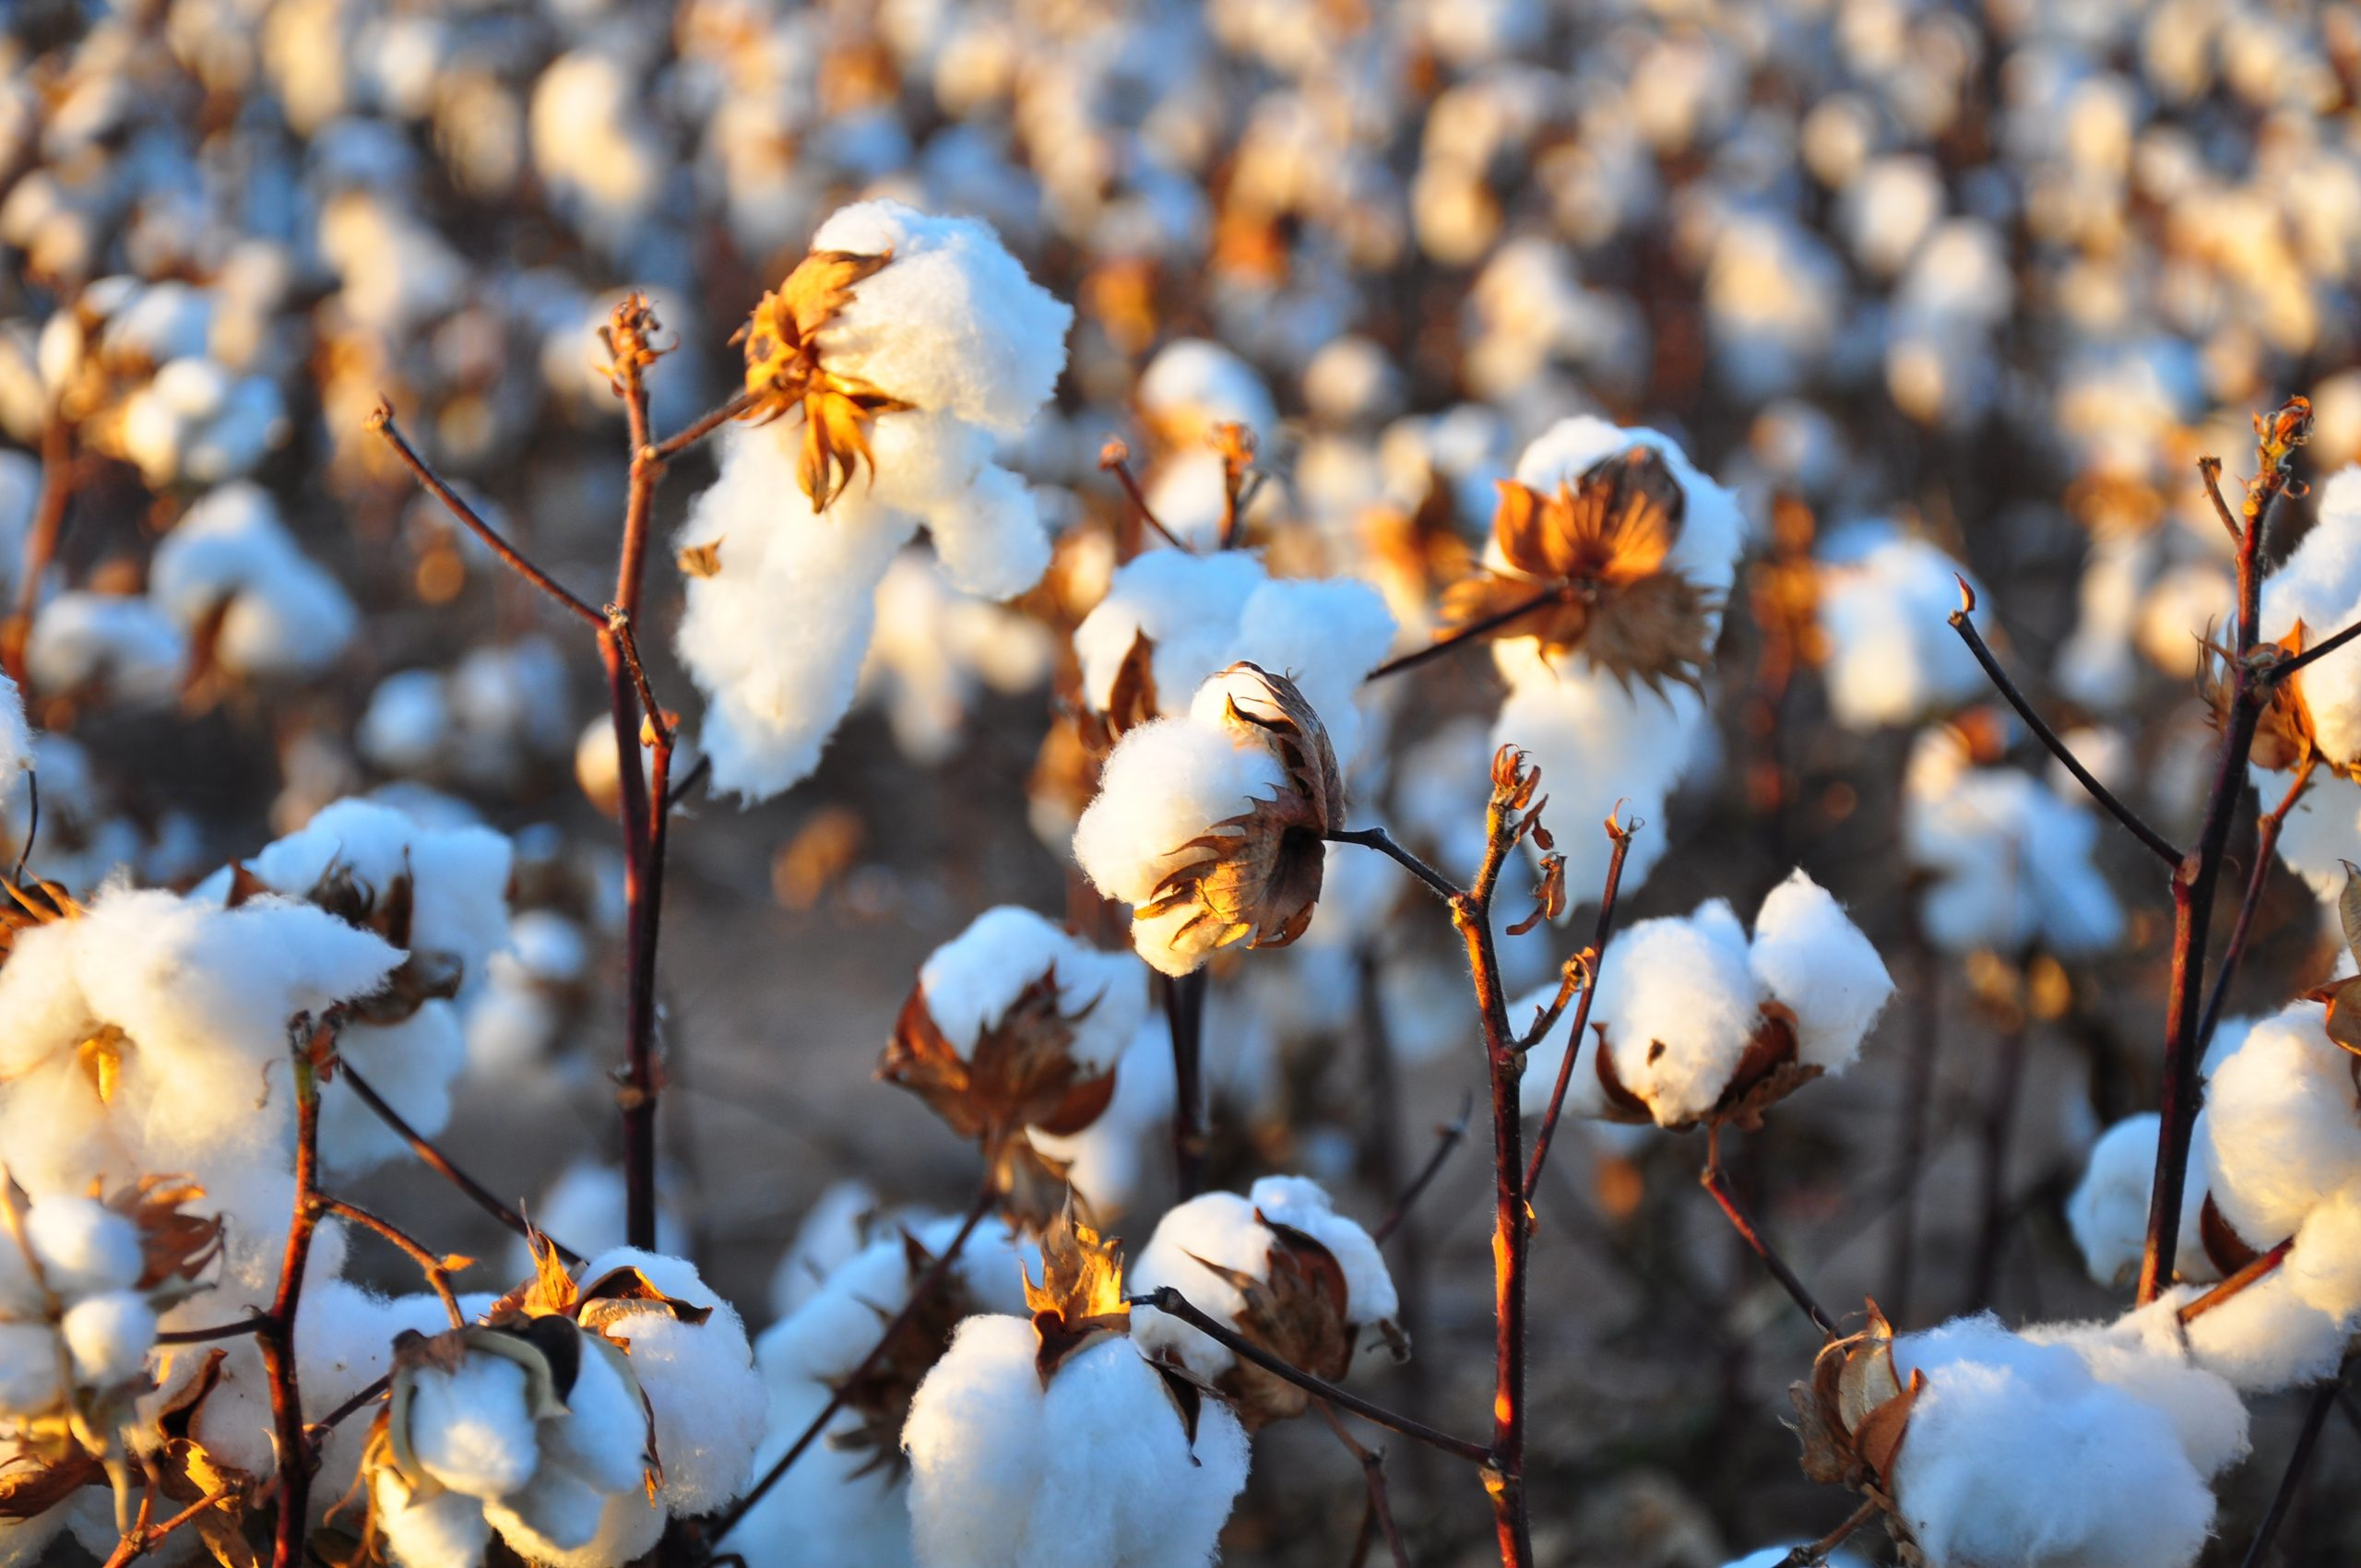 Cotton sowing has been delayed, with only 20% of the crop sown in Punjab